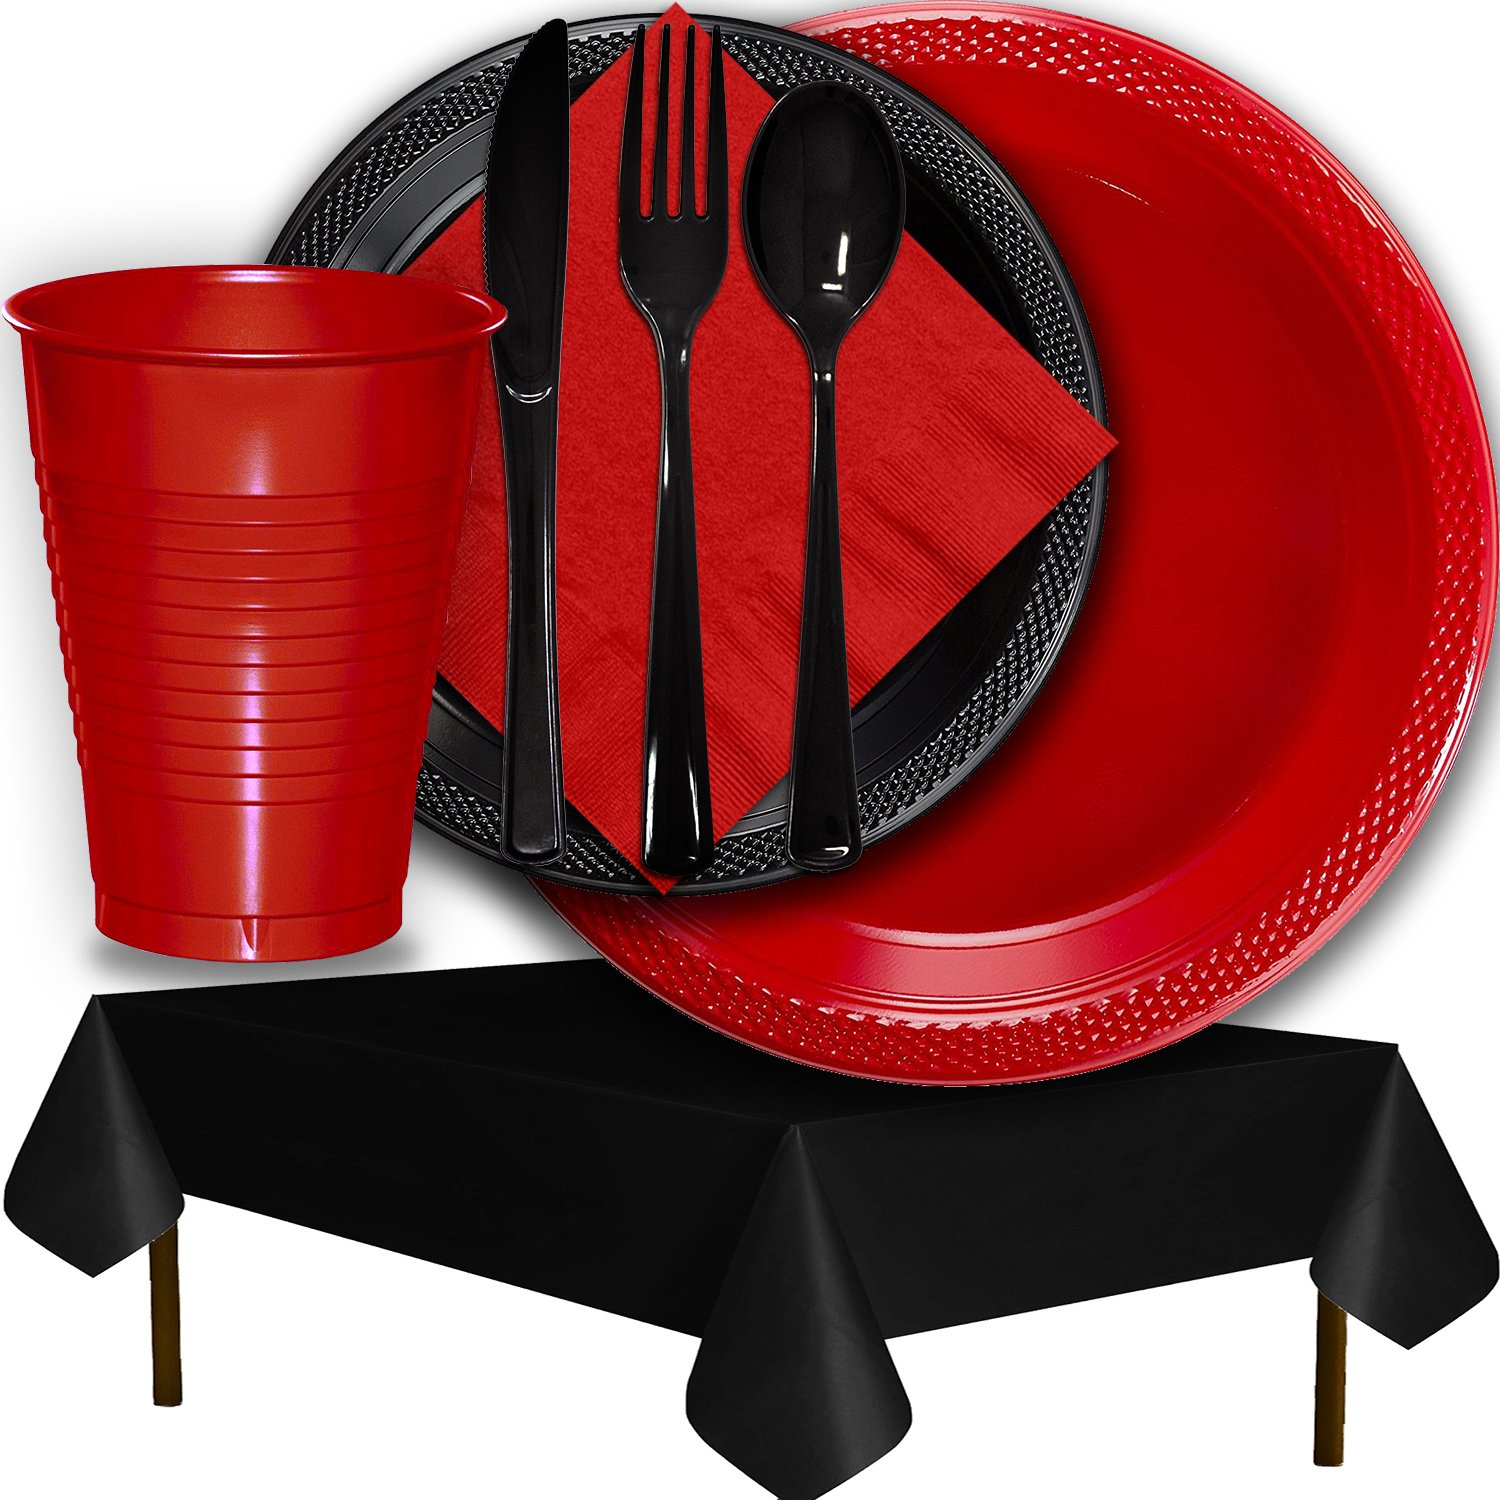 Plastic Party Supplies for 50 Guests - Red and Black - Dinner Plates, Dessert Plates, Cups, Lunch Napkins, Cutlery, and Tablecloths - Premium Quality Tableware Set